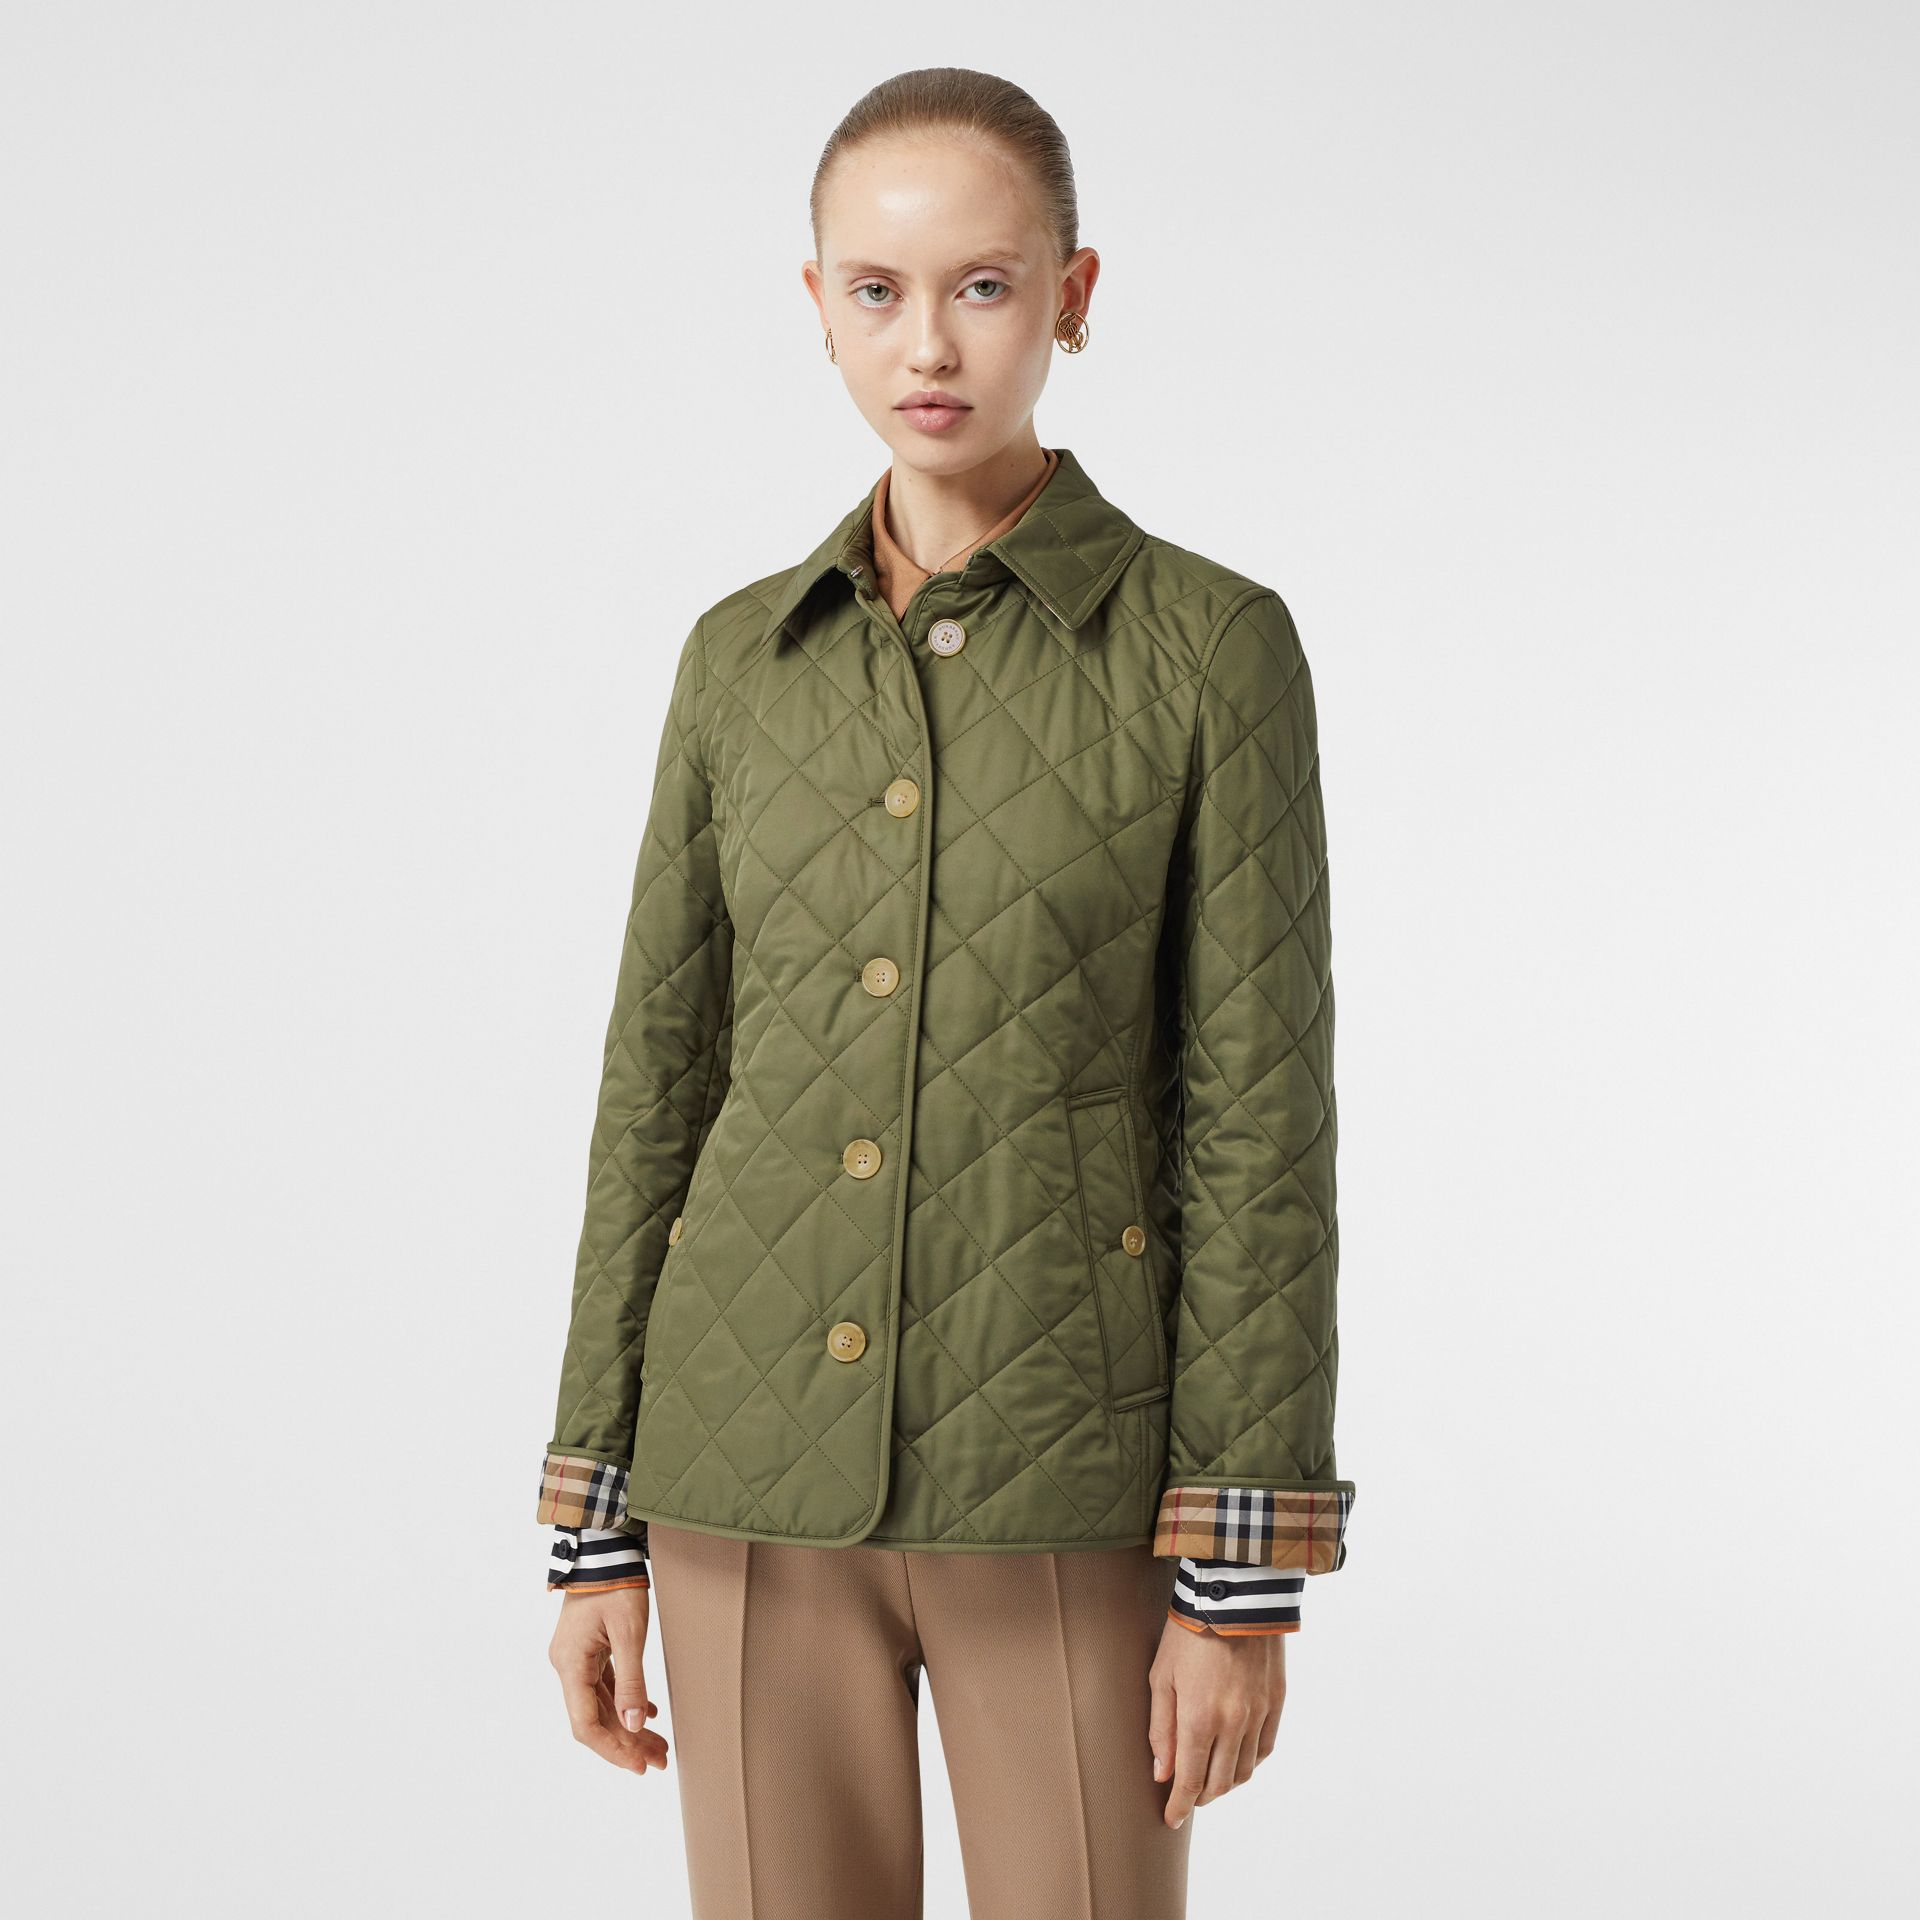 Diamond Quilted Jacket in Olive Green - Women | Burberry - gallery image 5